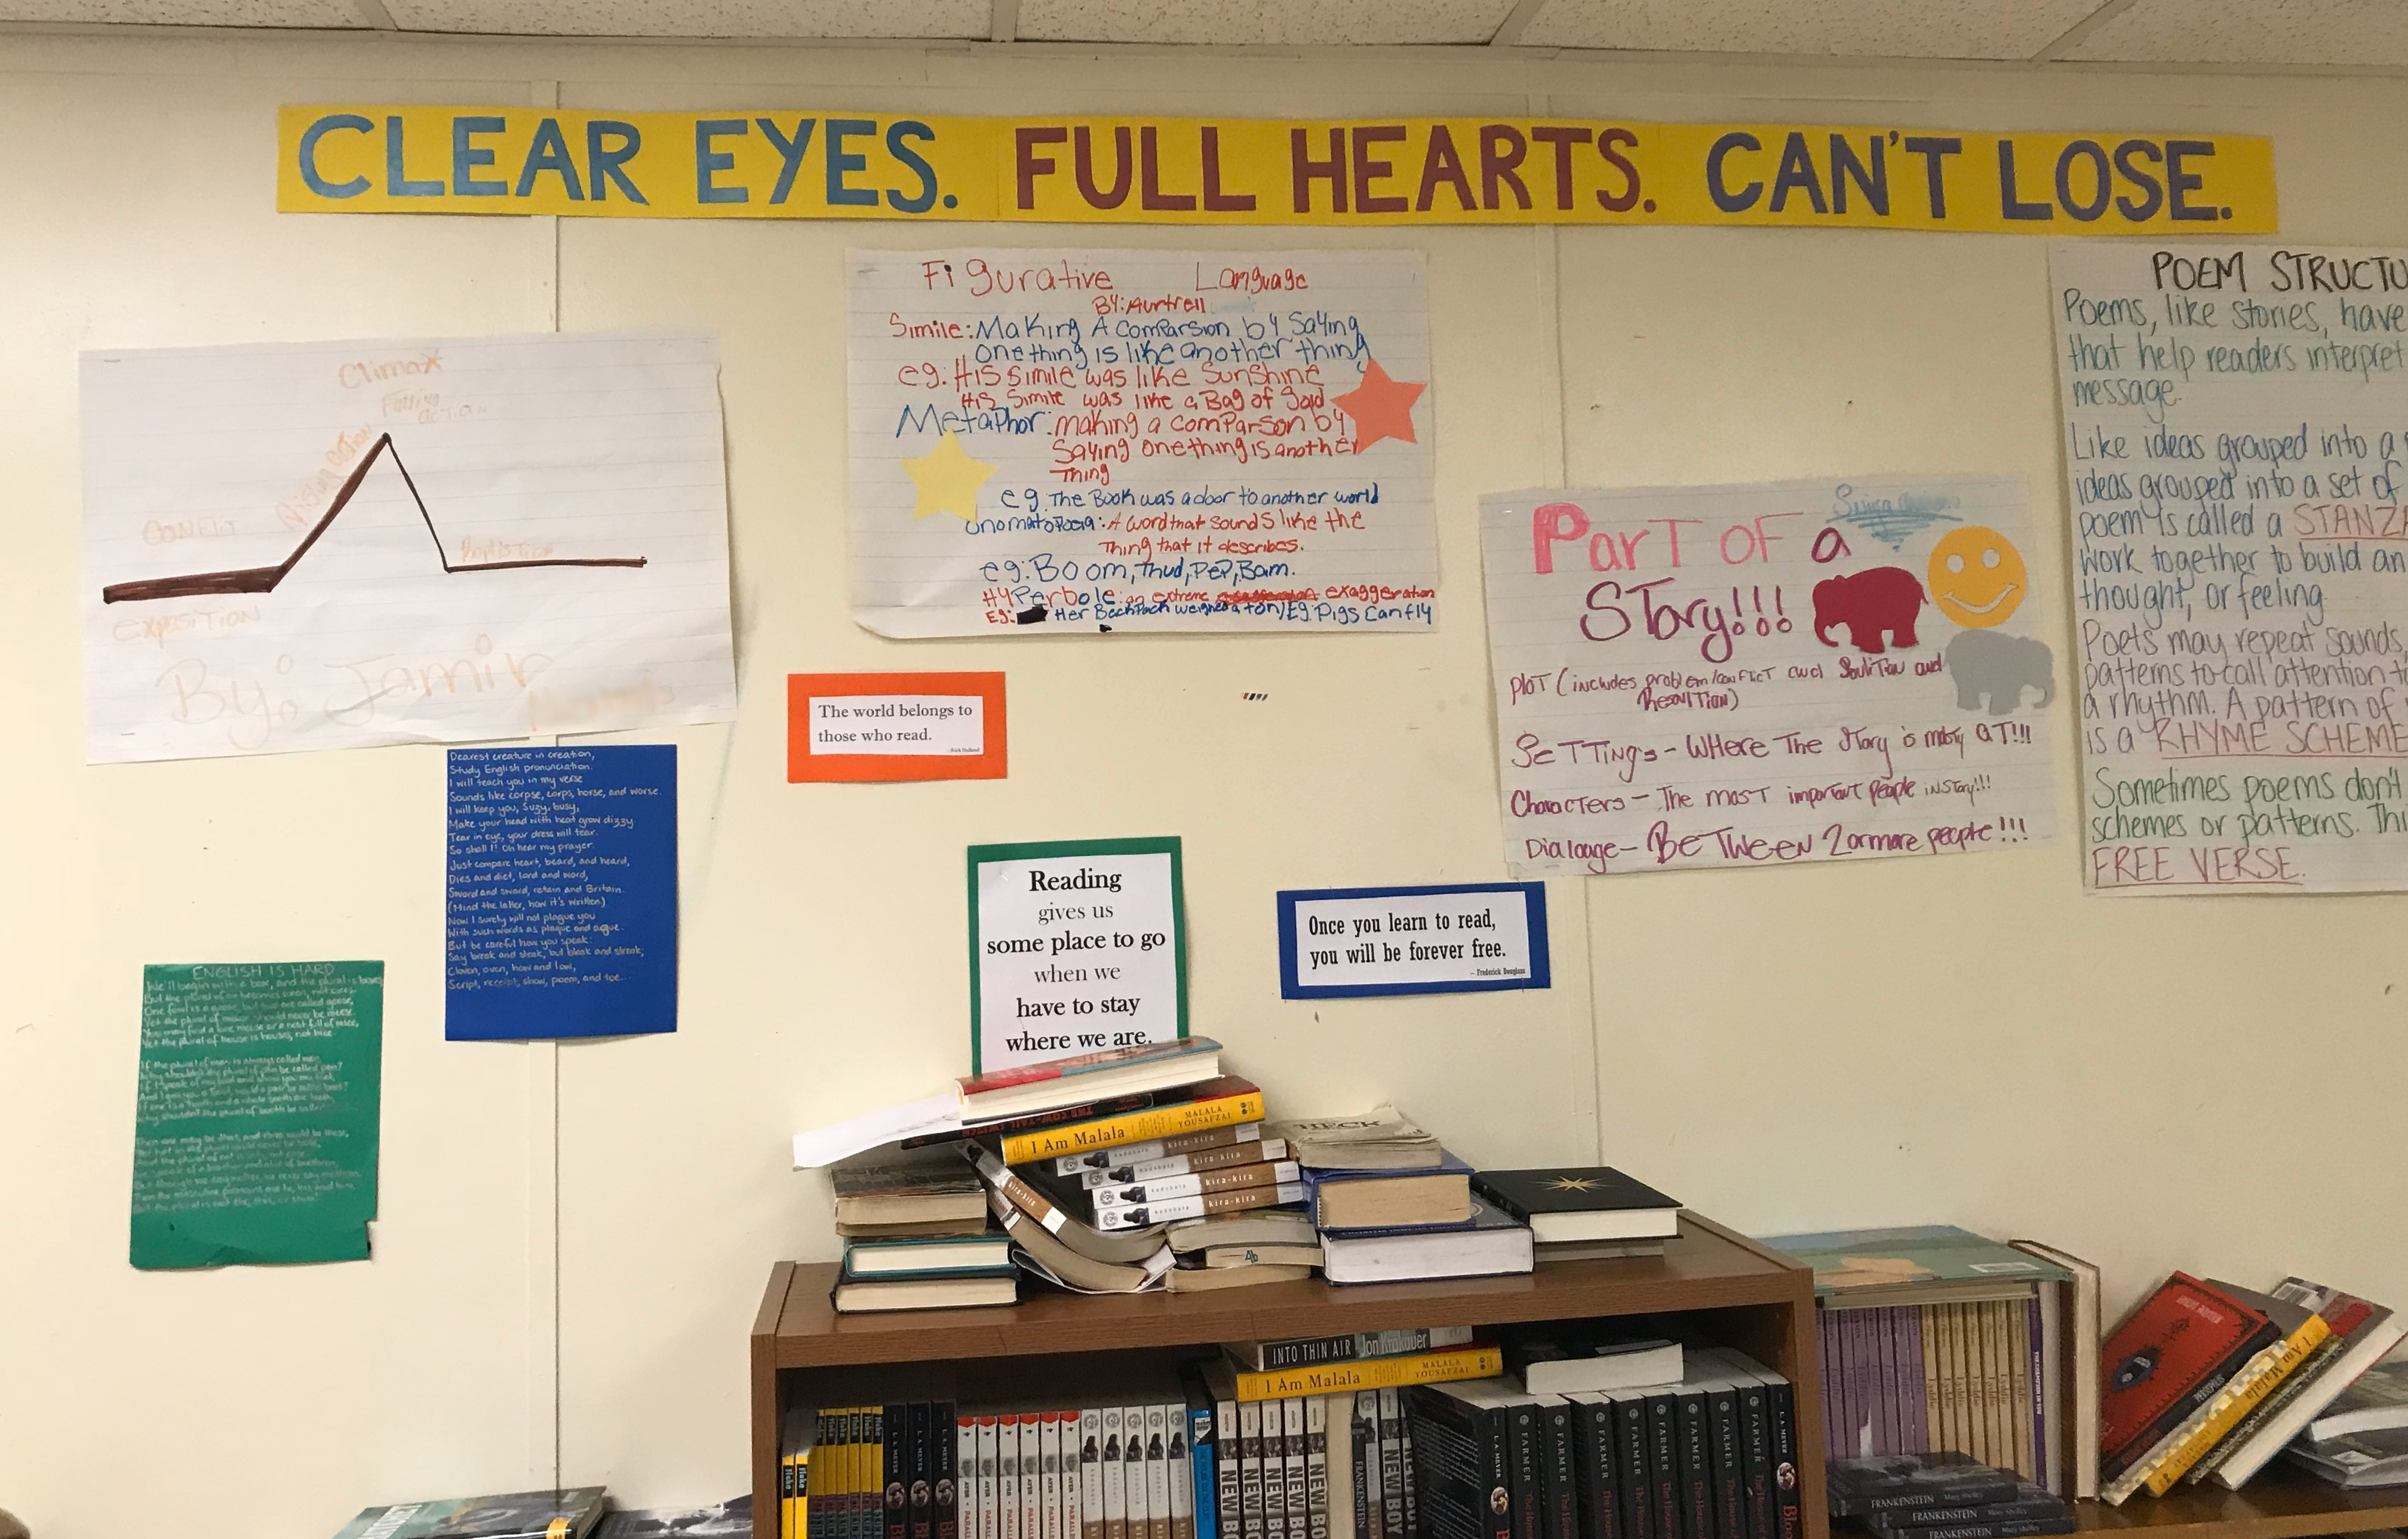 """Wall covered in handmade posters. Banner at the top says """"CLEAR EYES. FULL HEARTS. CAN'T LOSE."""". Headings on posters say """"Figurative Language"""", """"Part of a story"""" and """"POEM STRUCTURE"""". Below the posters are the tops of some bookshelves, covered in piles of books."""